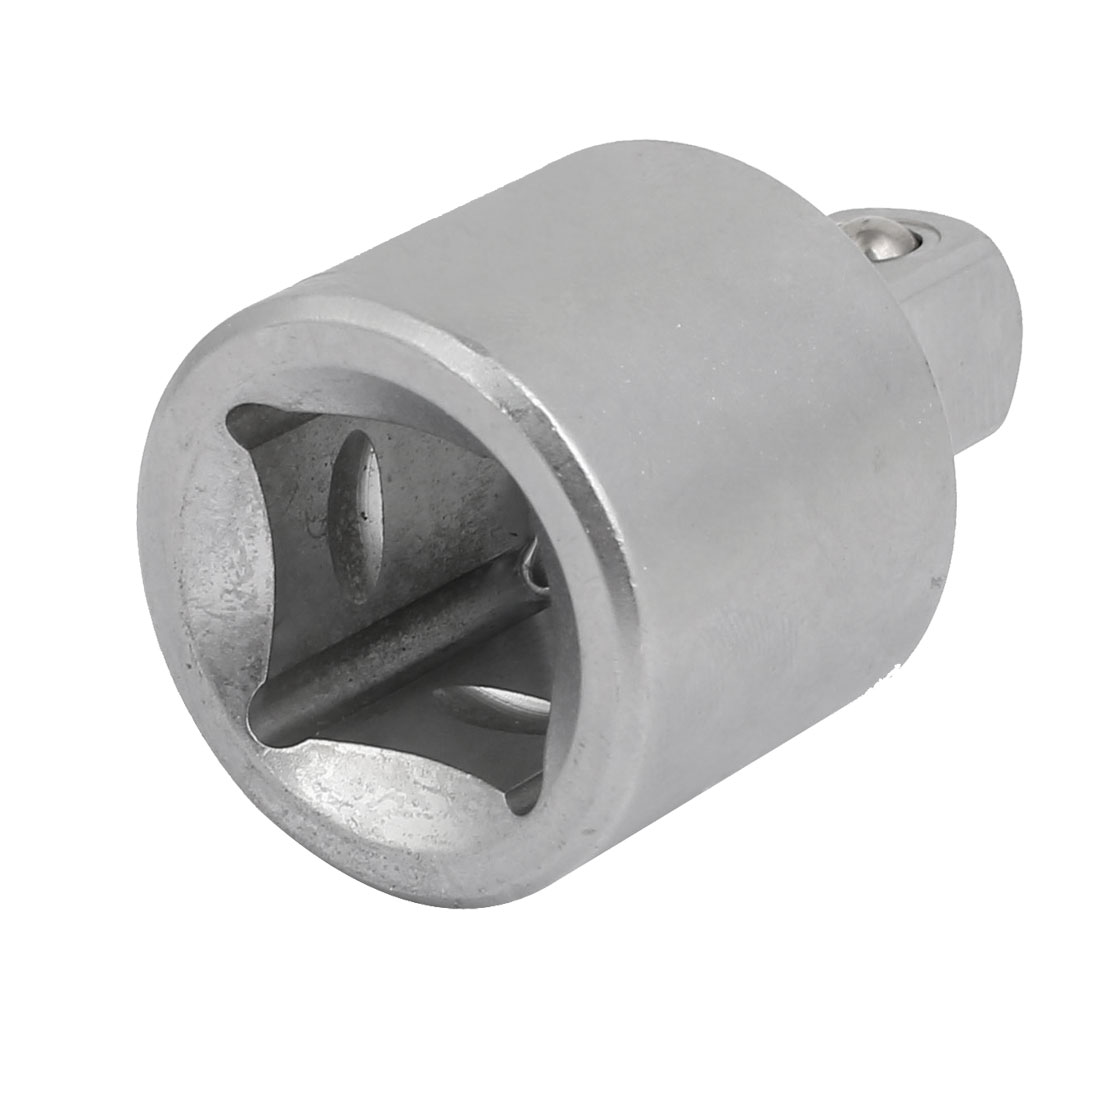 3/4'' Square Hole 1/2'' Square Head Silver Tone Extension Adapter Impact Socket